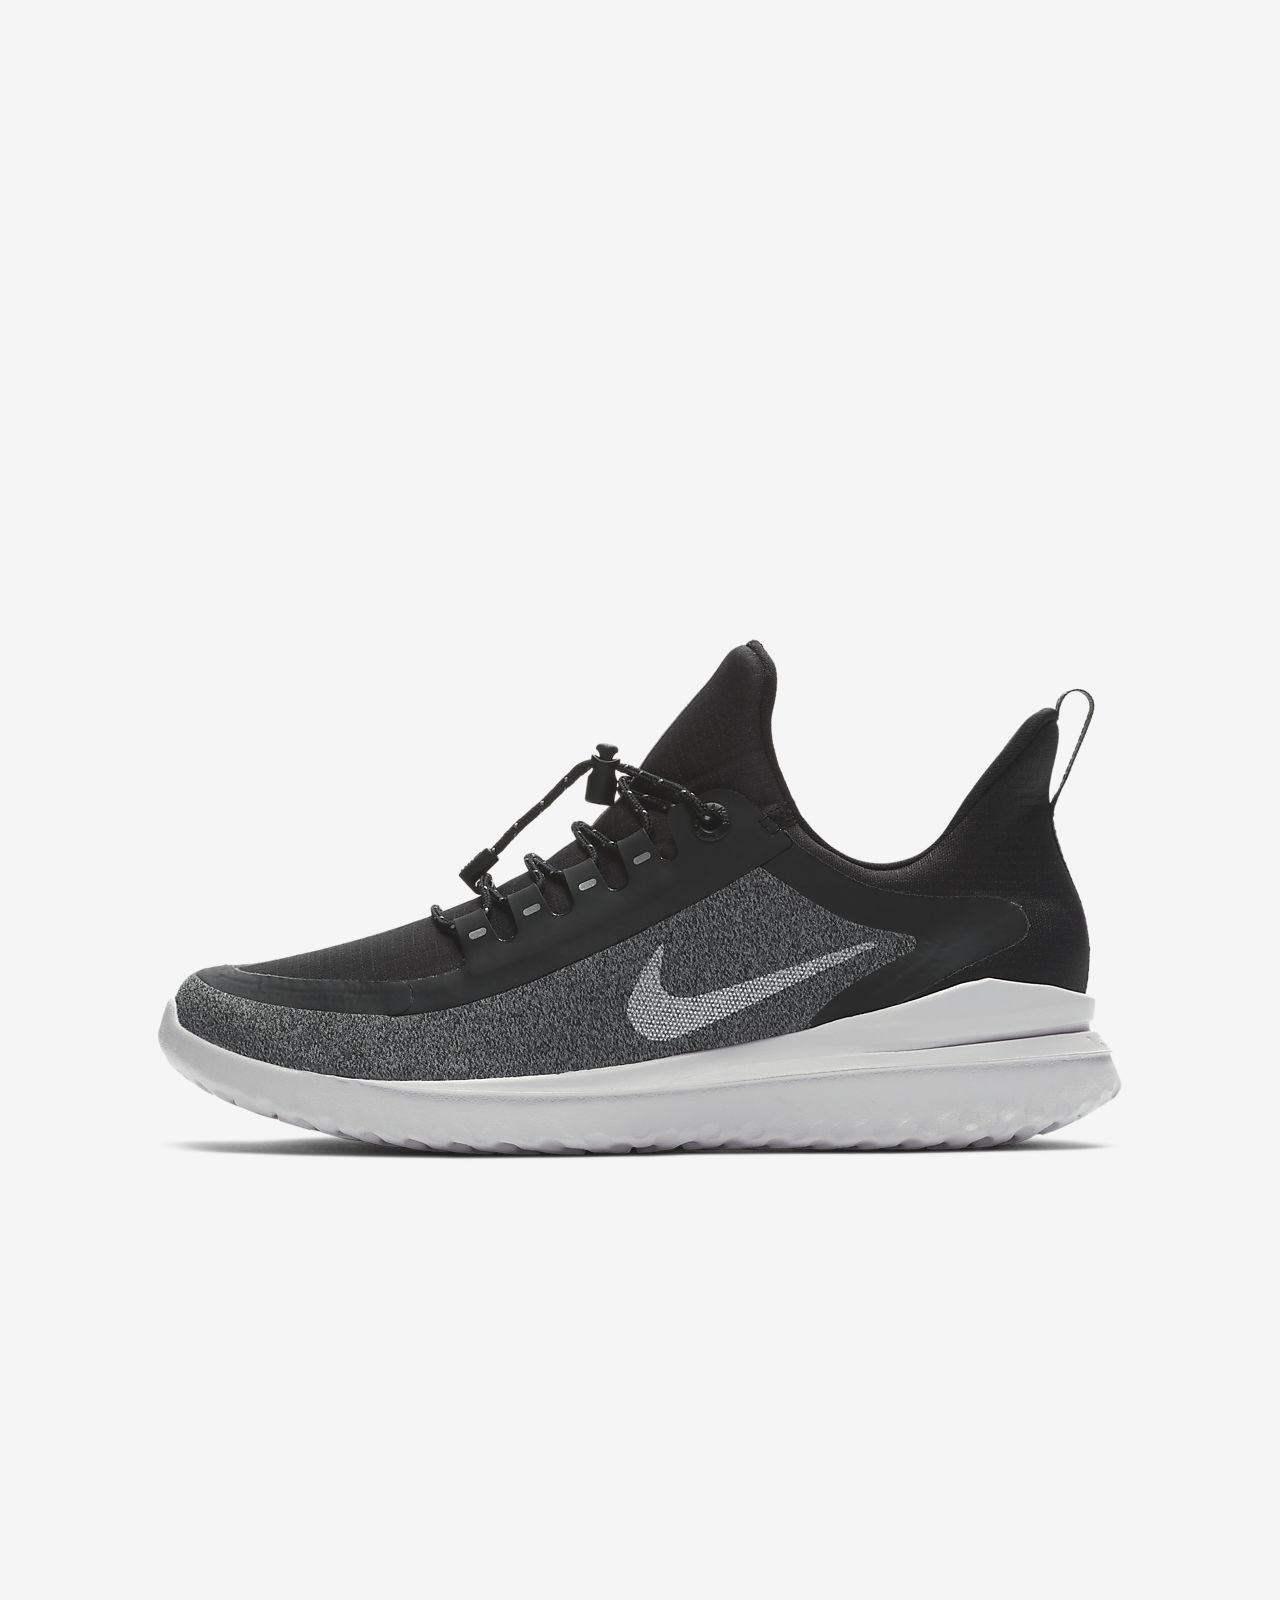 Nike Renew Rival Shield Older Kids' Running Shoe